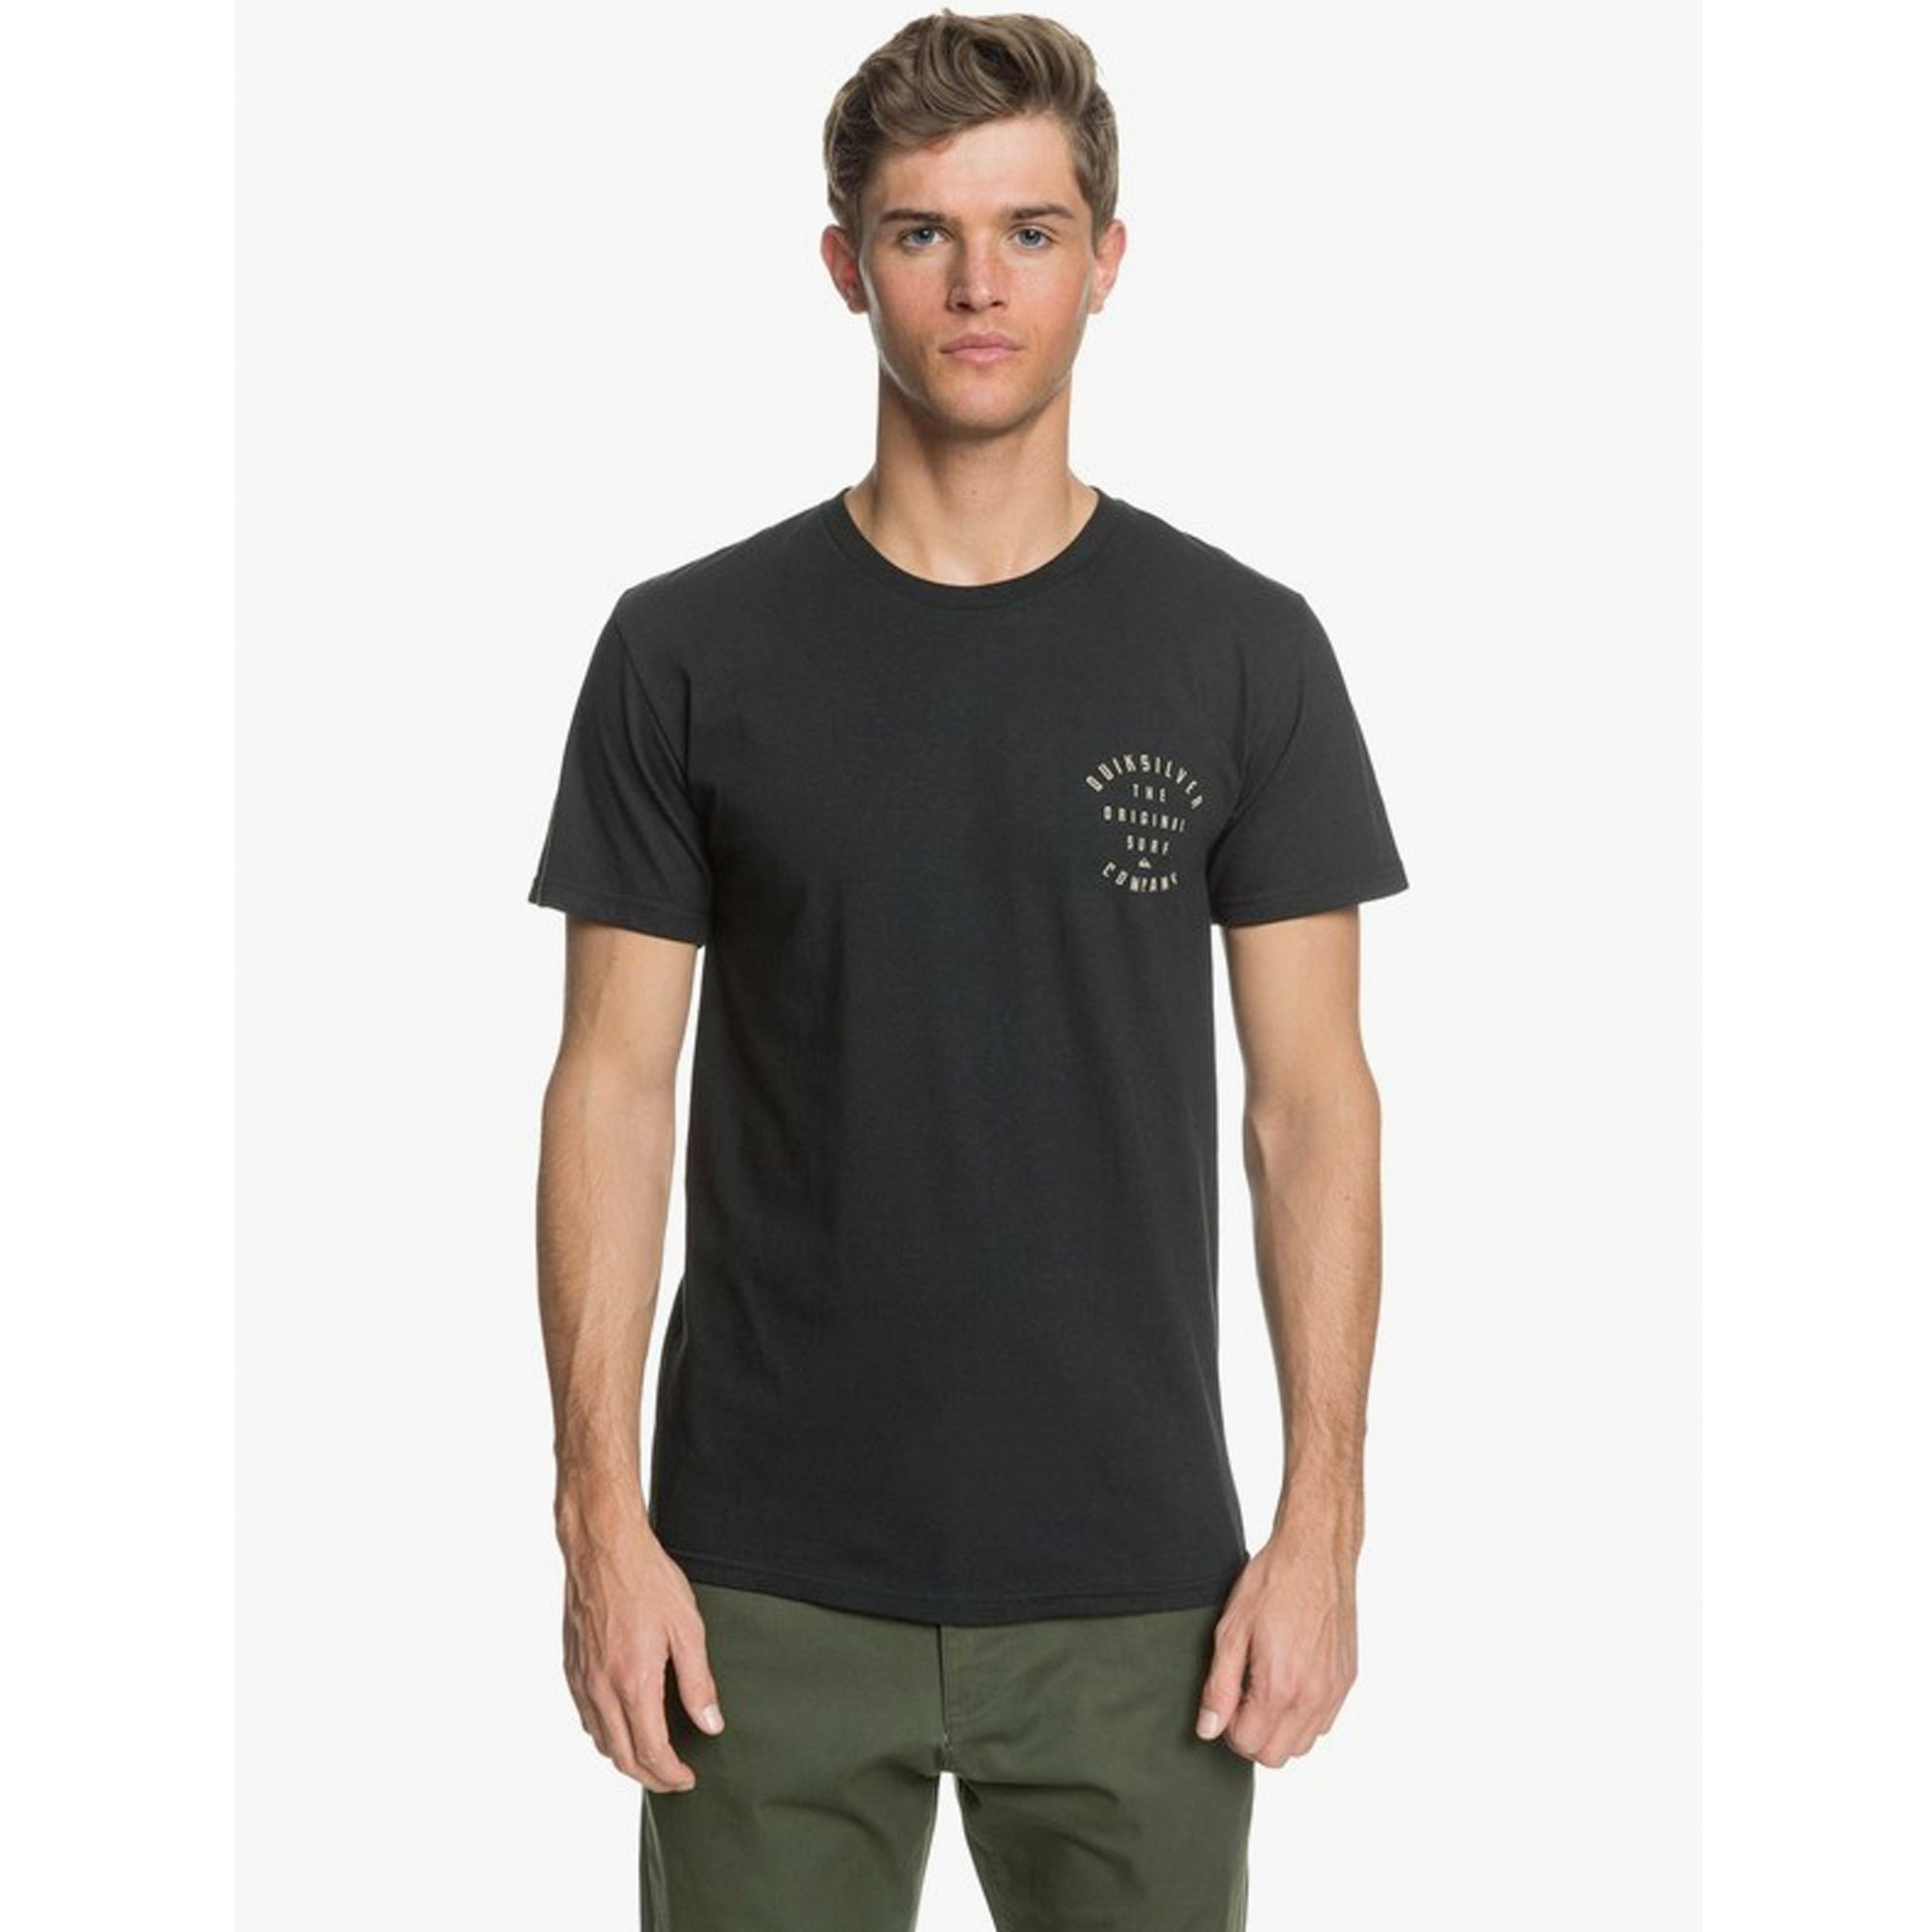 Quiksilver Swing Low Men's S/S T-Shirt